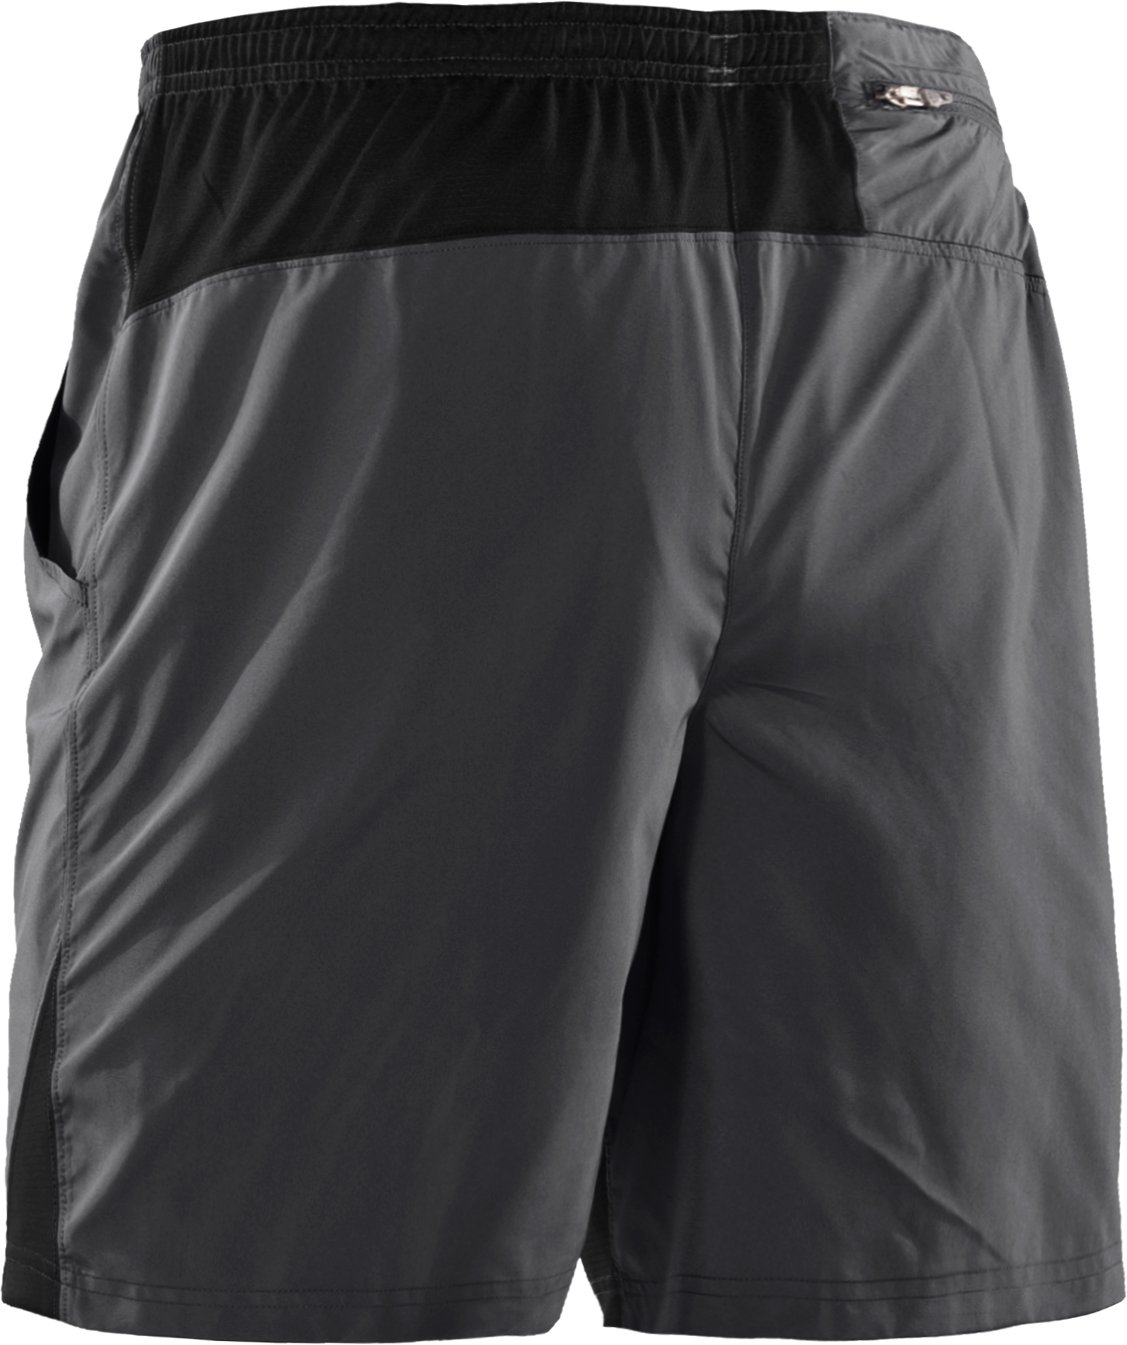 "Men's Draft UA Catalyst 7"" Shorts, Graphite"